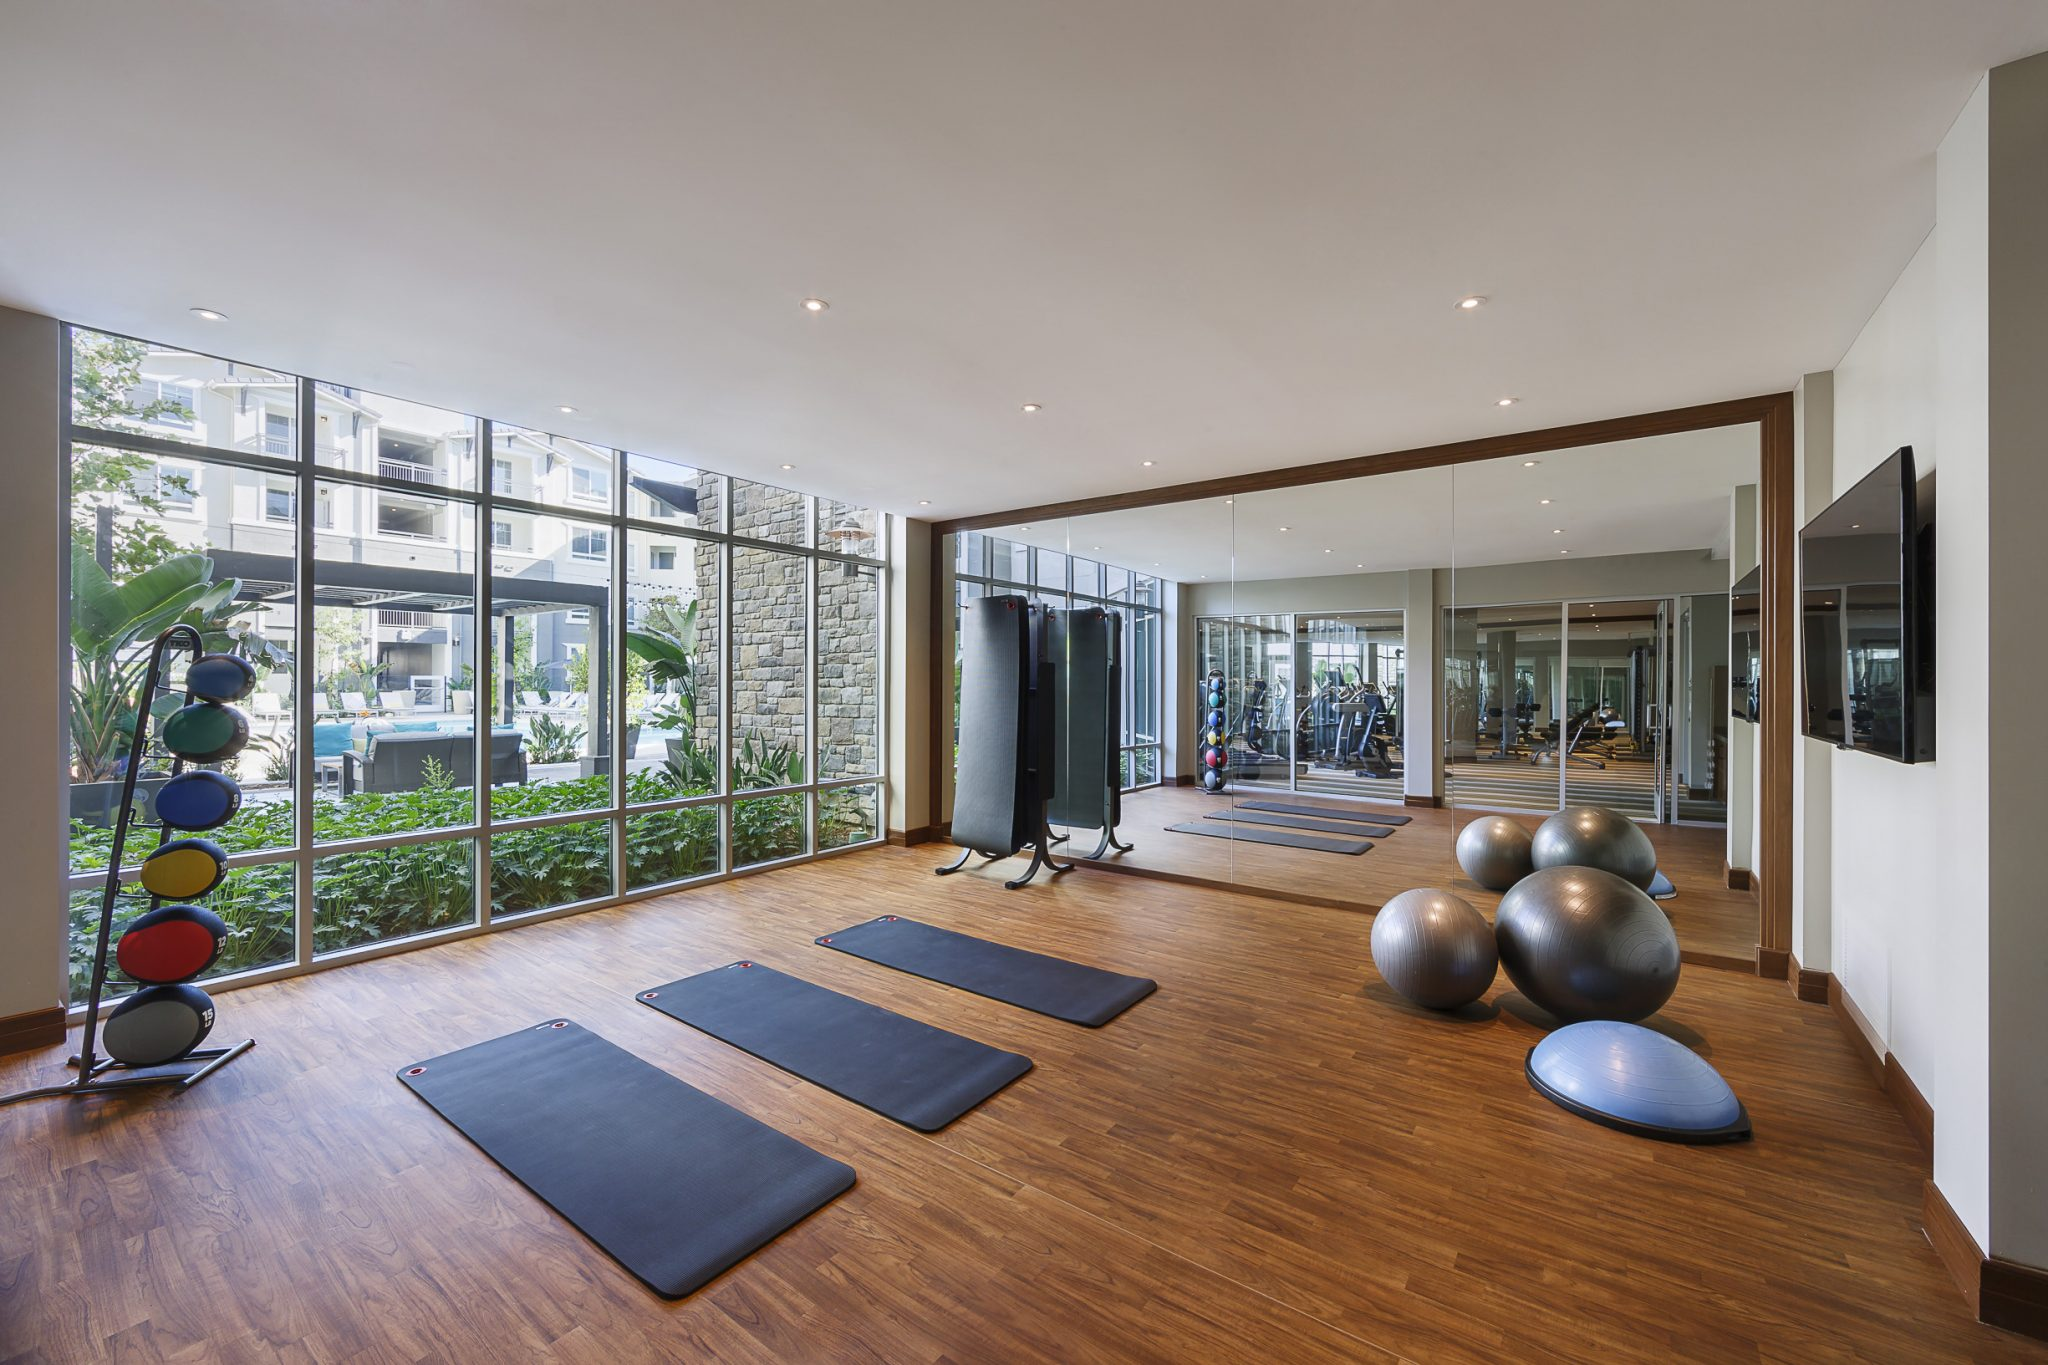 Interior of yoga studio with exercise balls, yoga mats and medicine balls in front of mirrored wall.